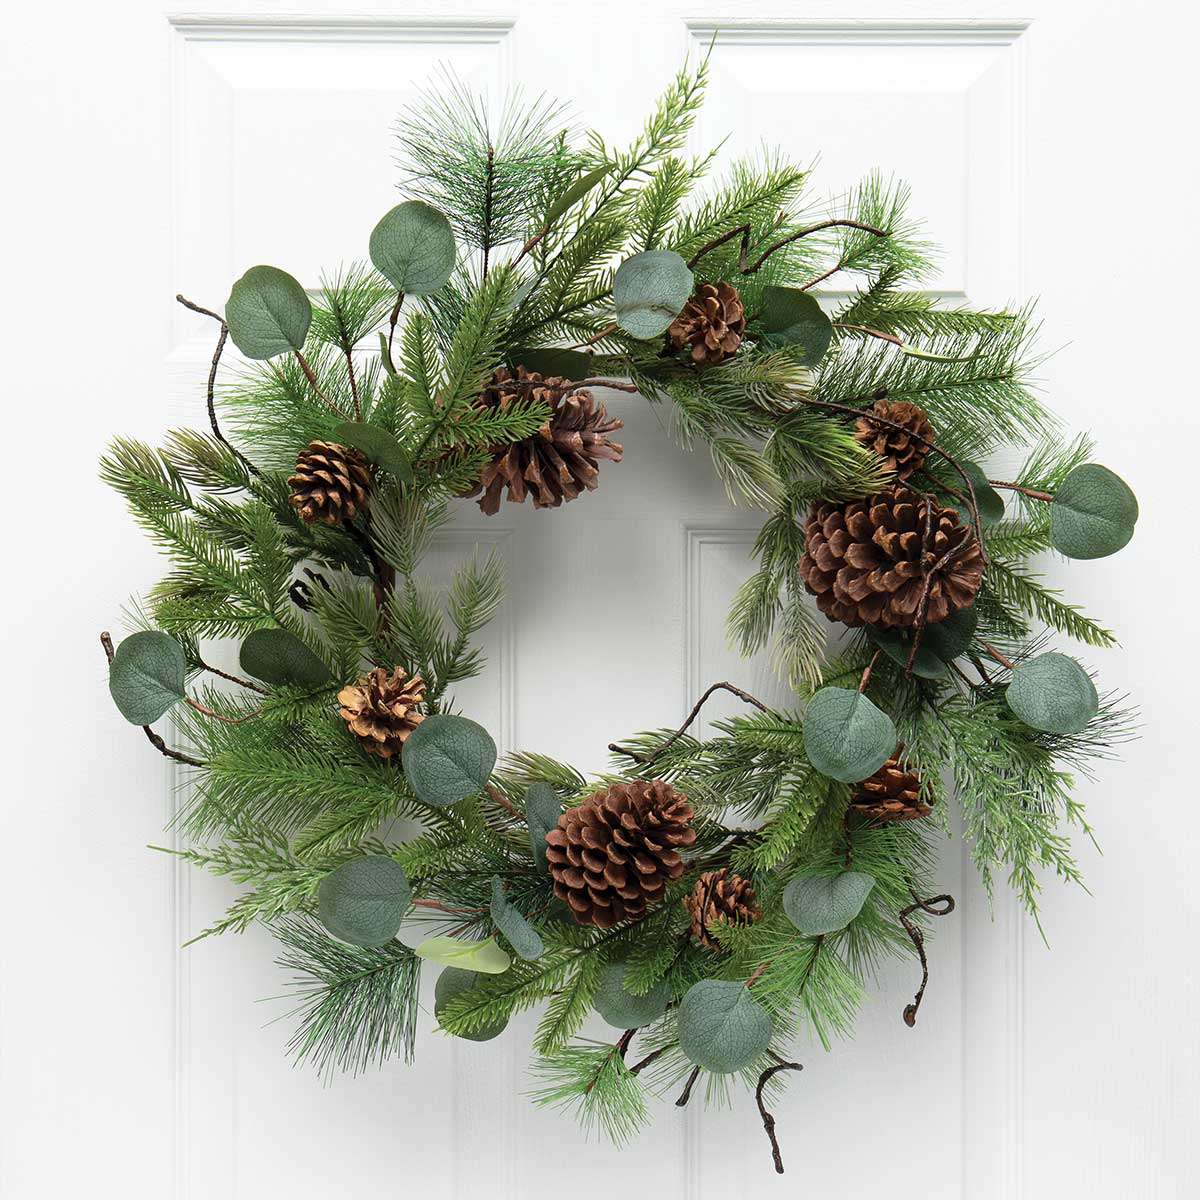 FRESH CUT PINE WREATH WITH EUCALYPTUS, FAUX TWIGS AND